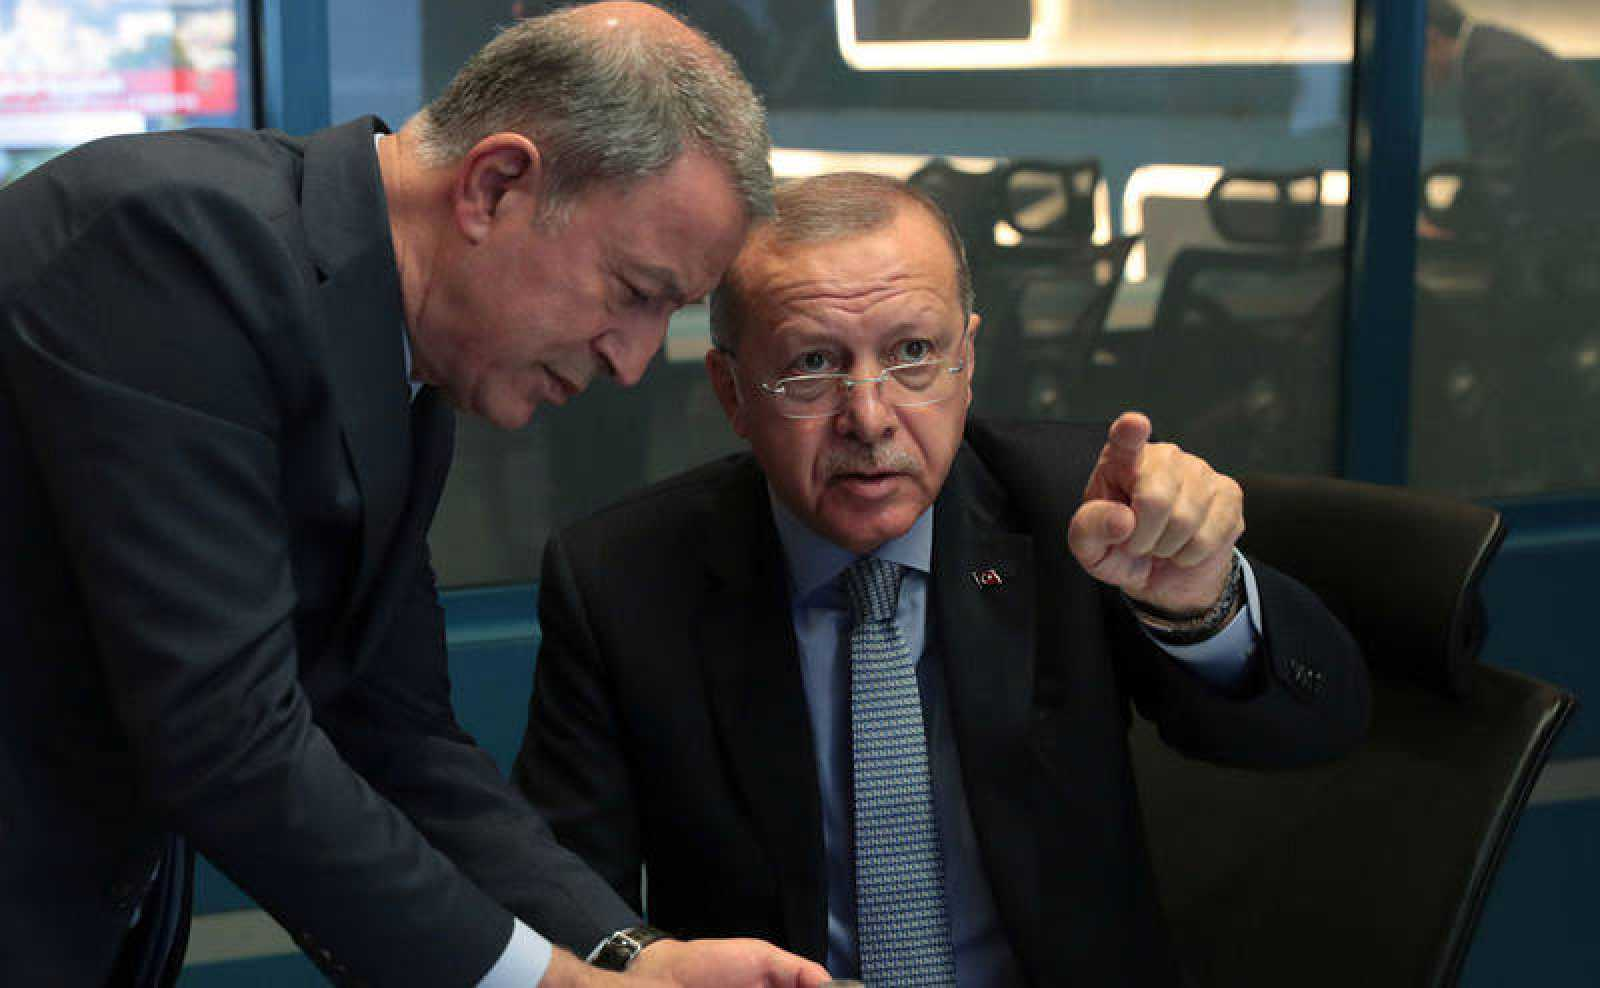 Turkish President Tayyip Erdogan is seen with Defence Minister Hulusi Akar at the operation center in Ankara, Turkey